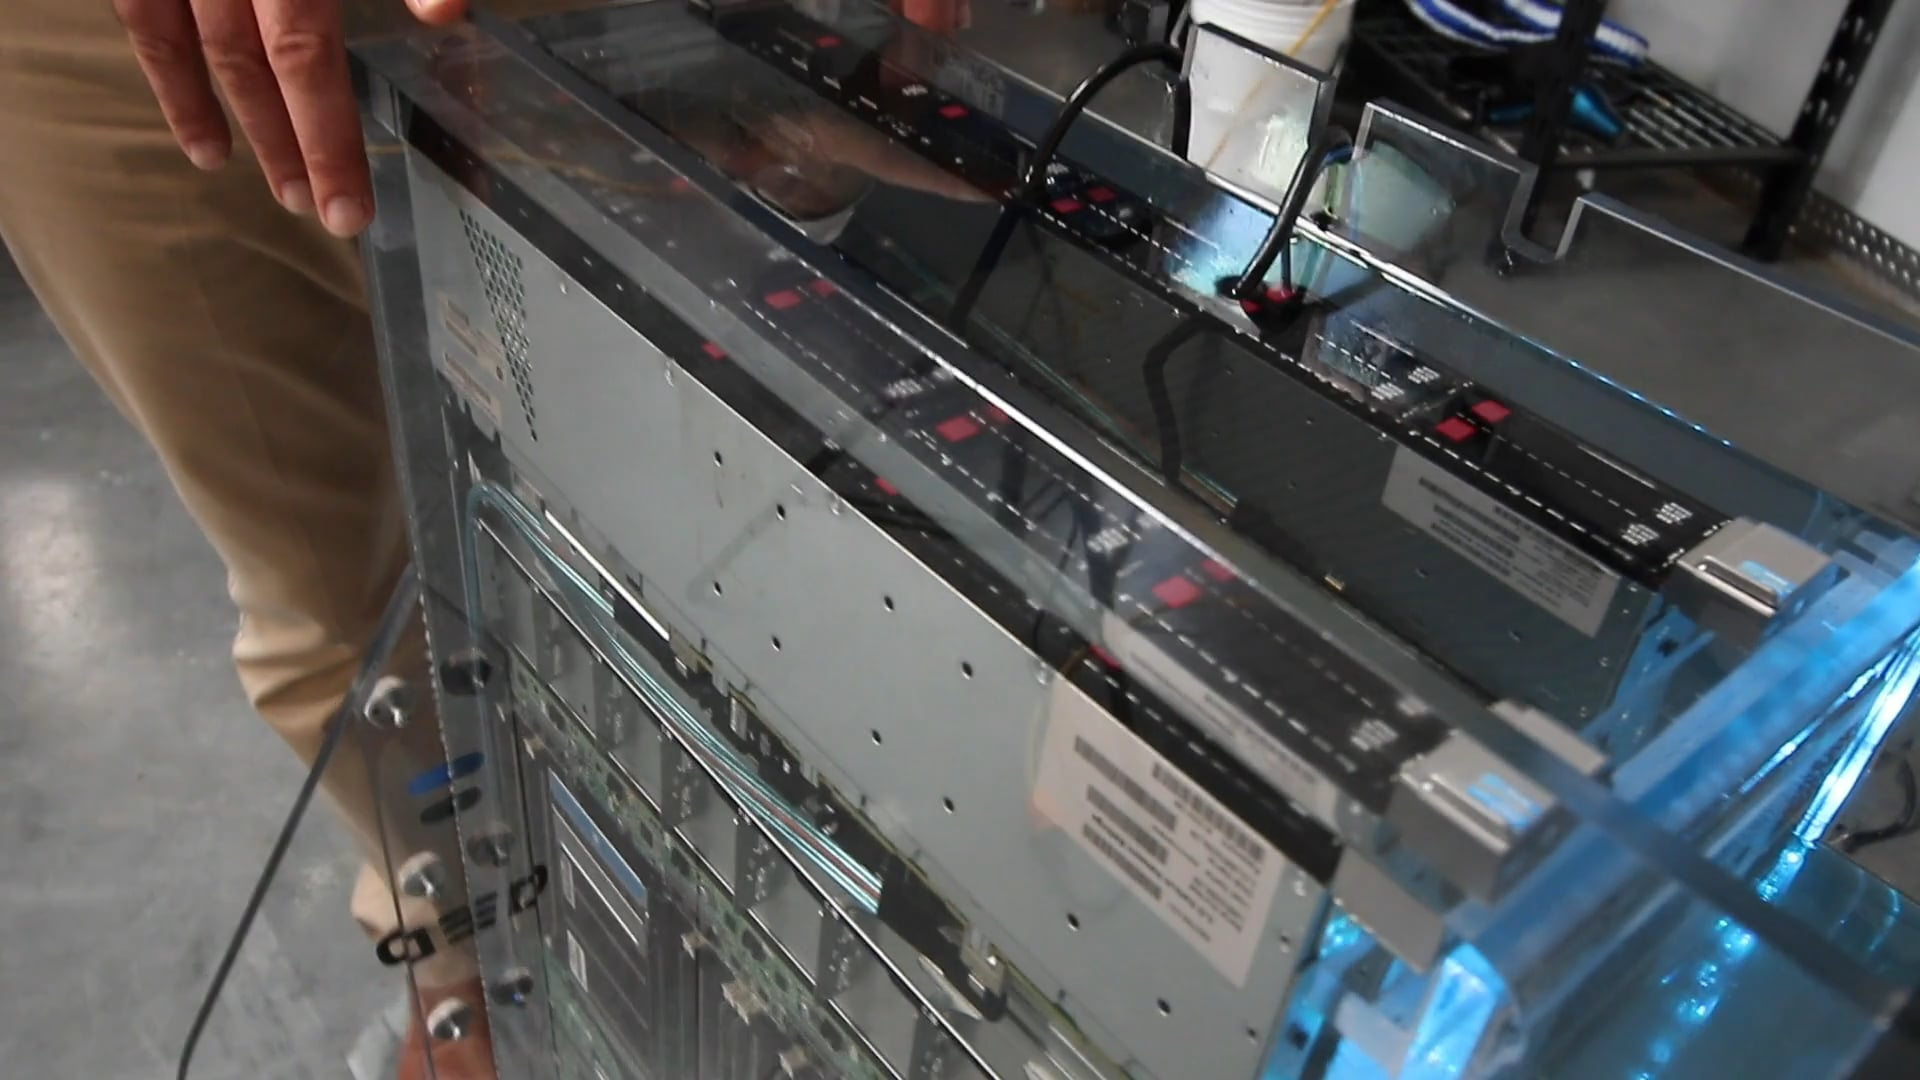 Preparing a Server for Immersion Cooling